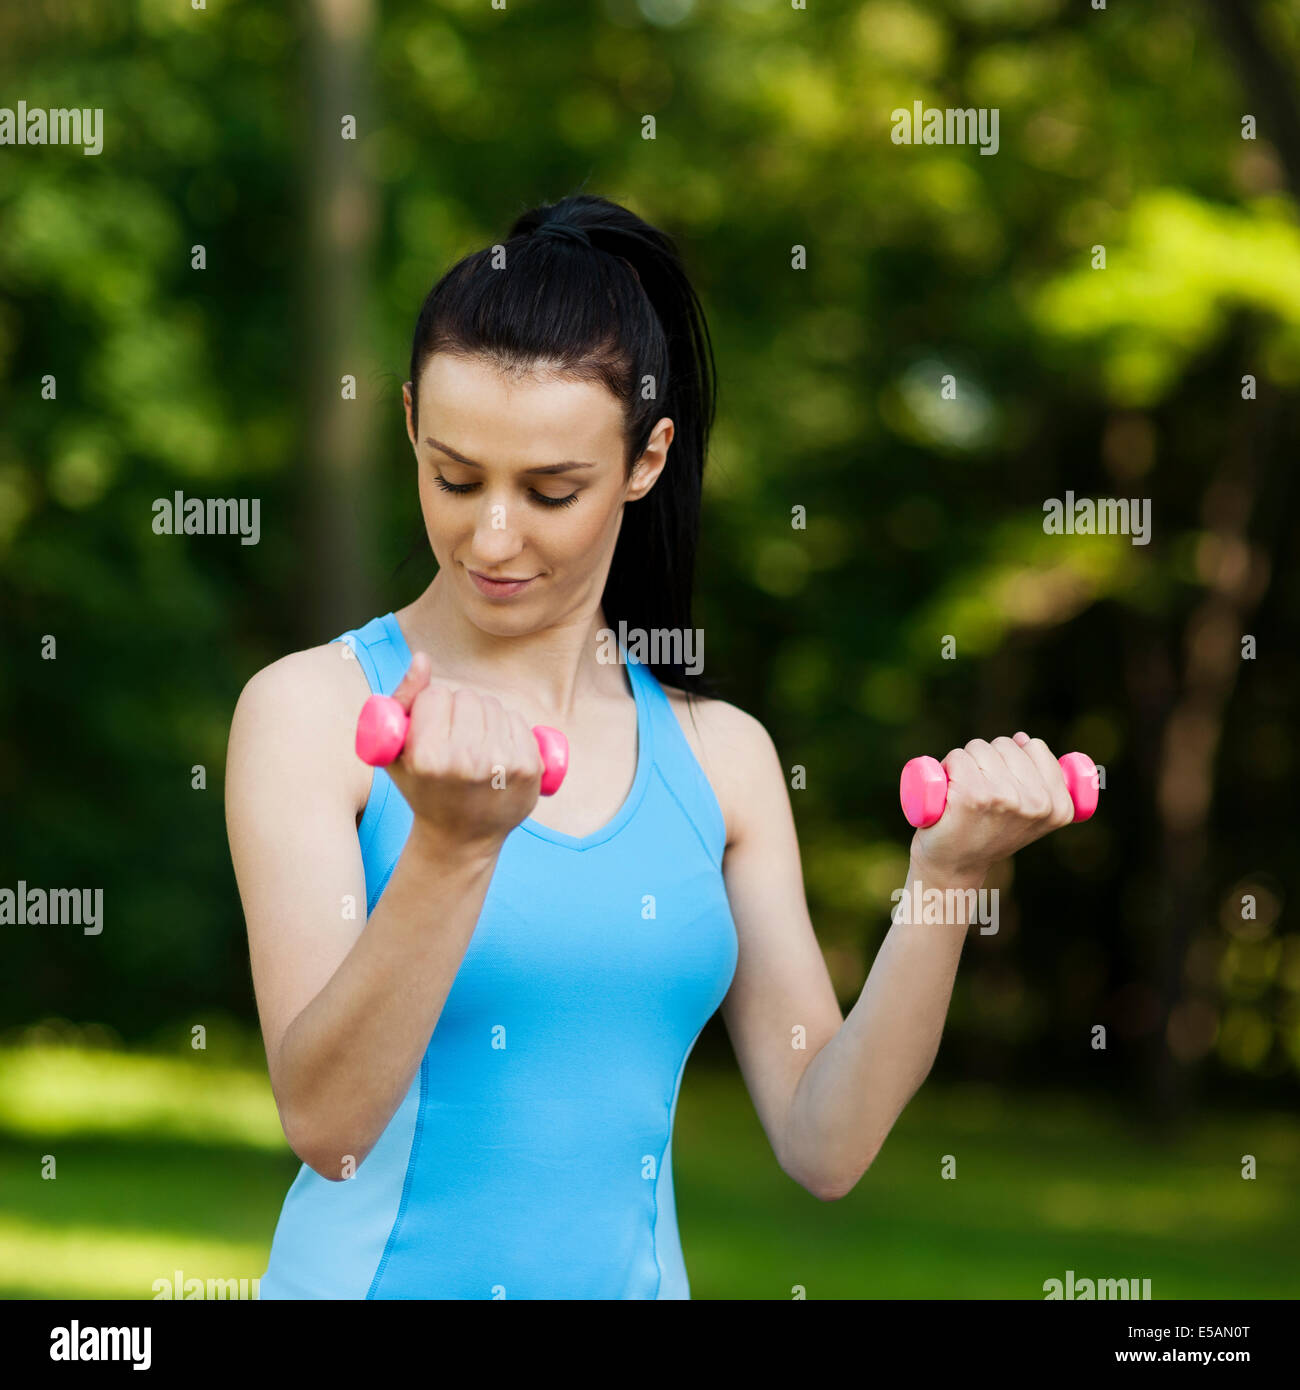 Young woman with dumbbells Debica, Poland - Stock Image